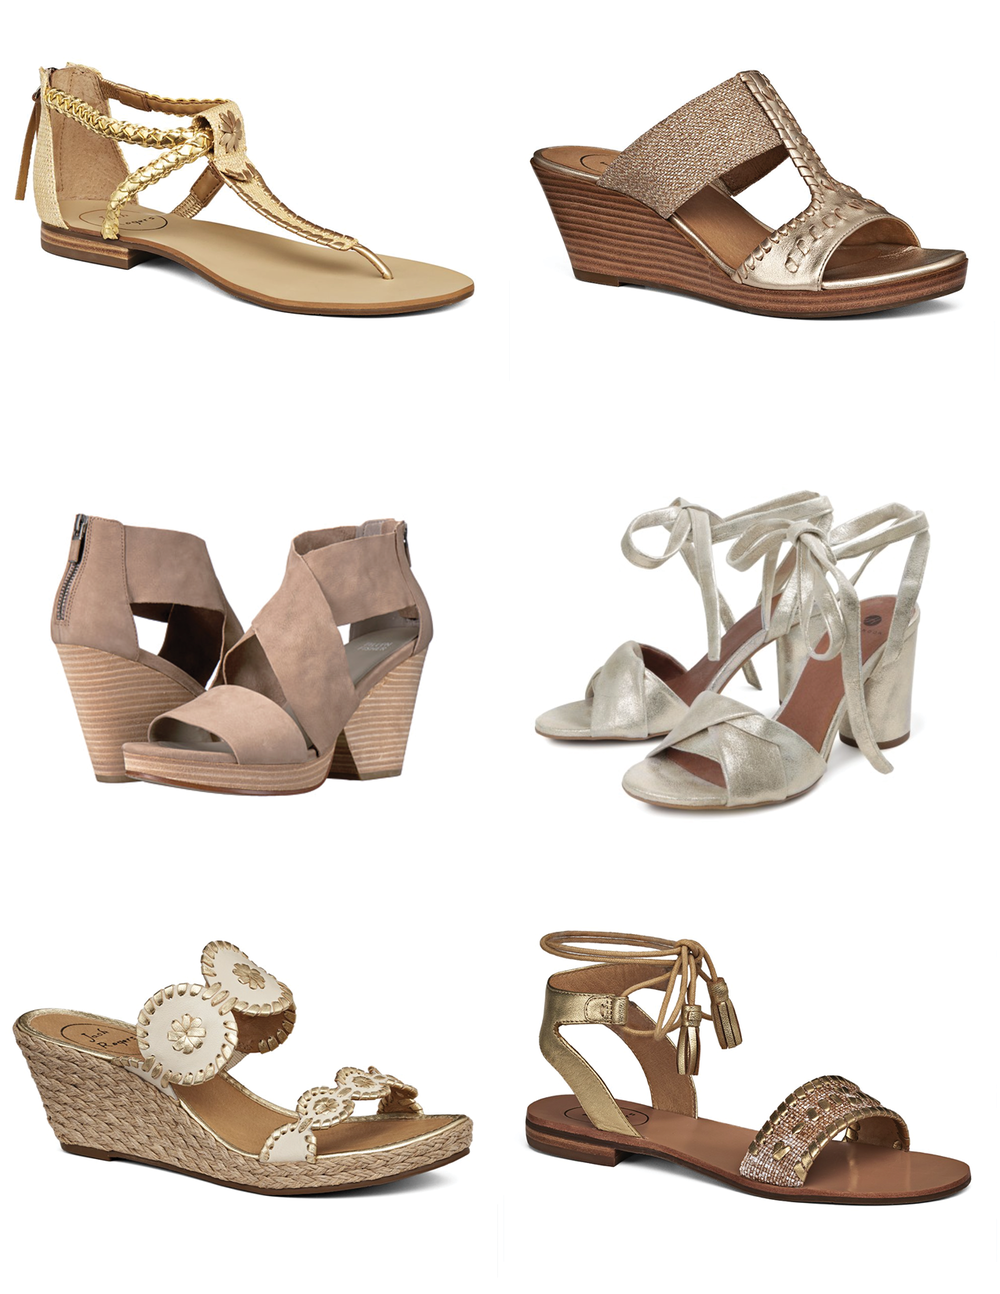 summerstaples_sandals.png